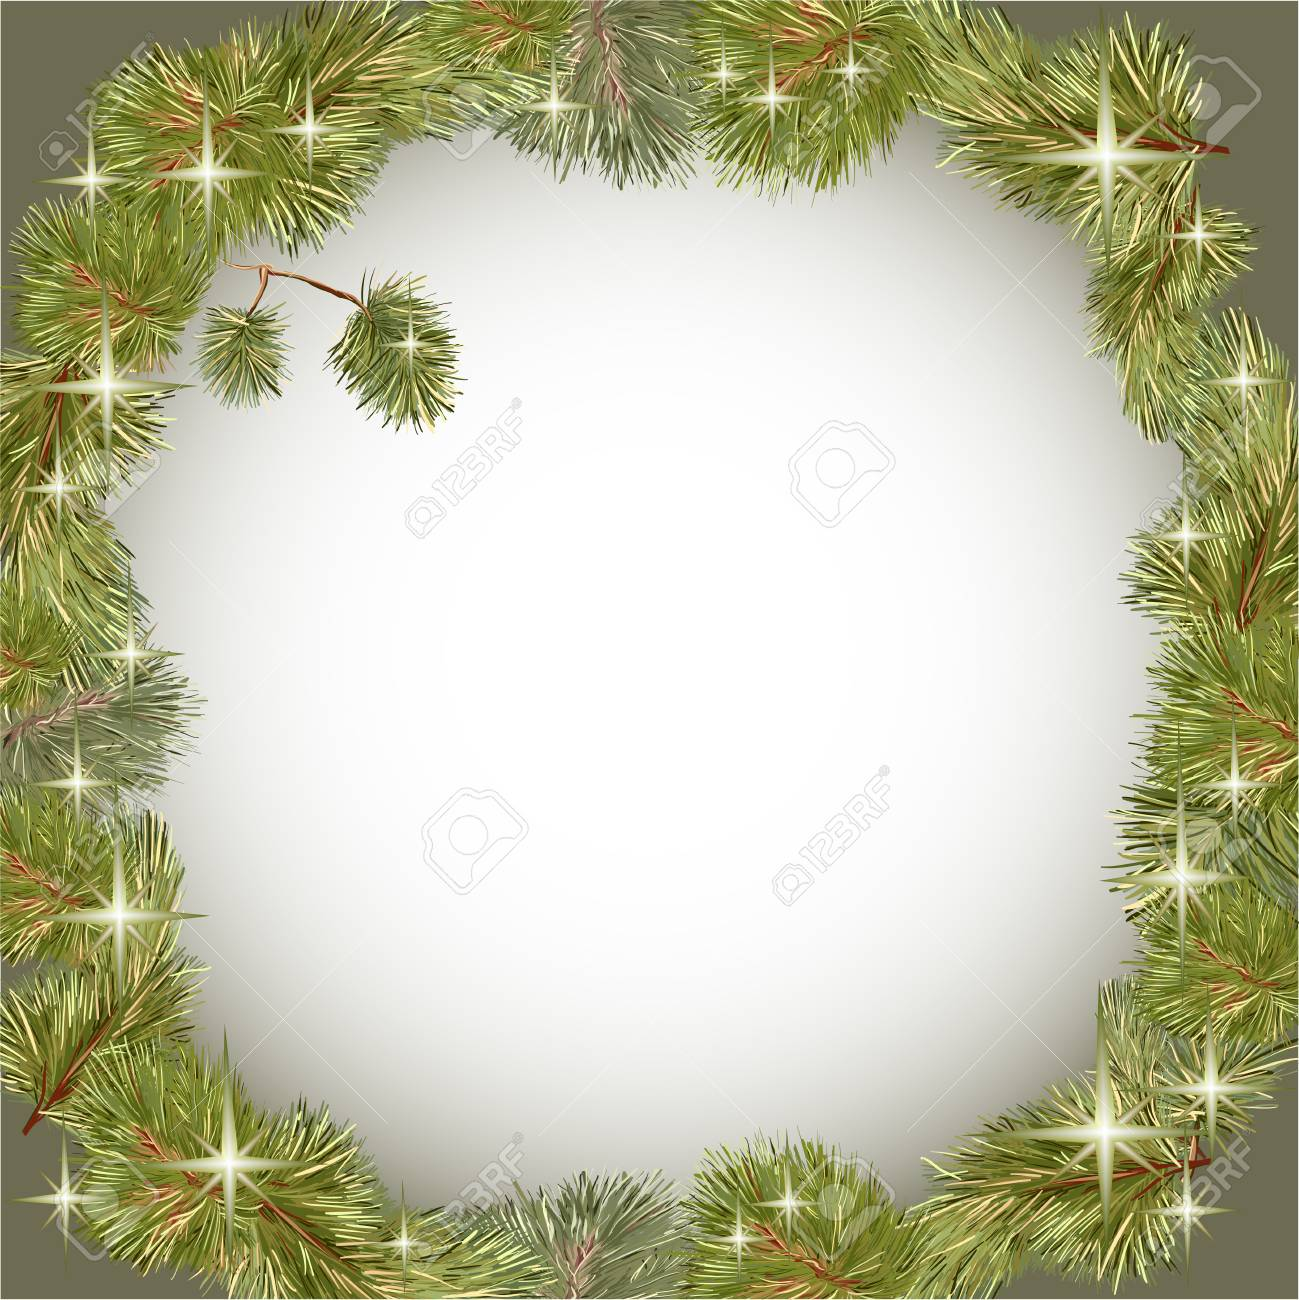 Romantic Frame Wreath Of Christmas Tree Branch With Shining